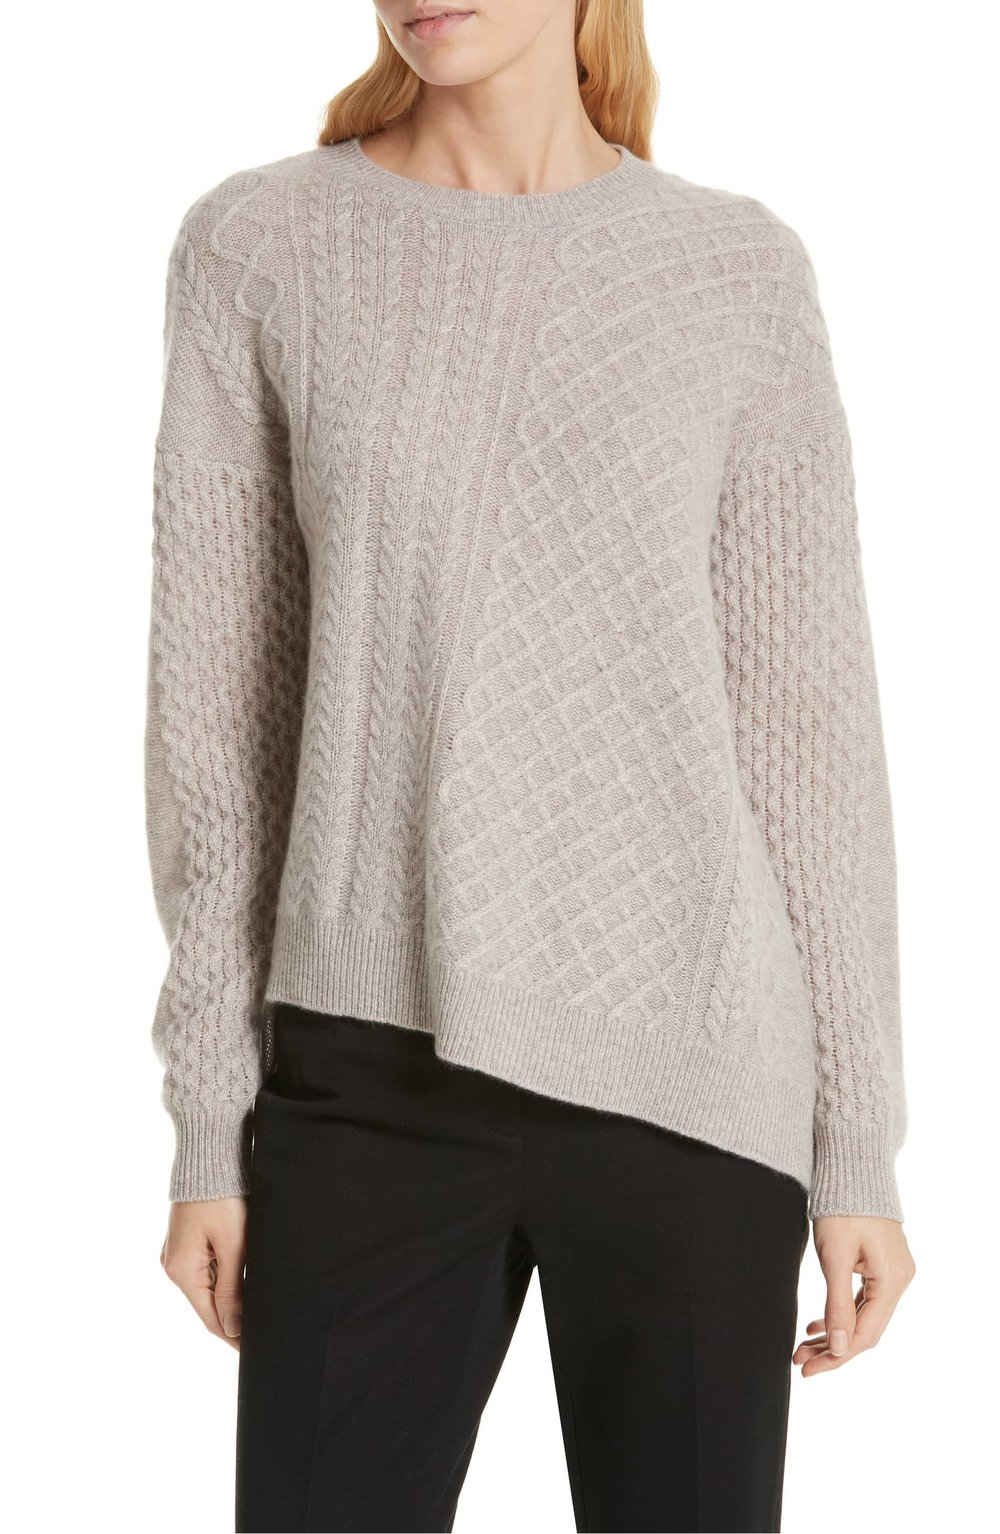 Nordstrom Signature Cable Mix Asymmetrical Cashmere Sweater. Nordstrom. Was: $279. Now: $139.